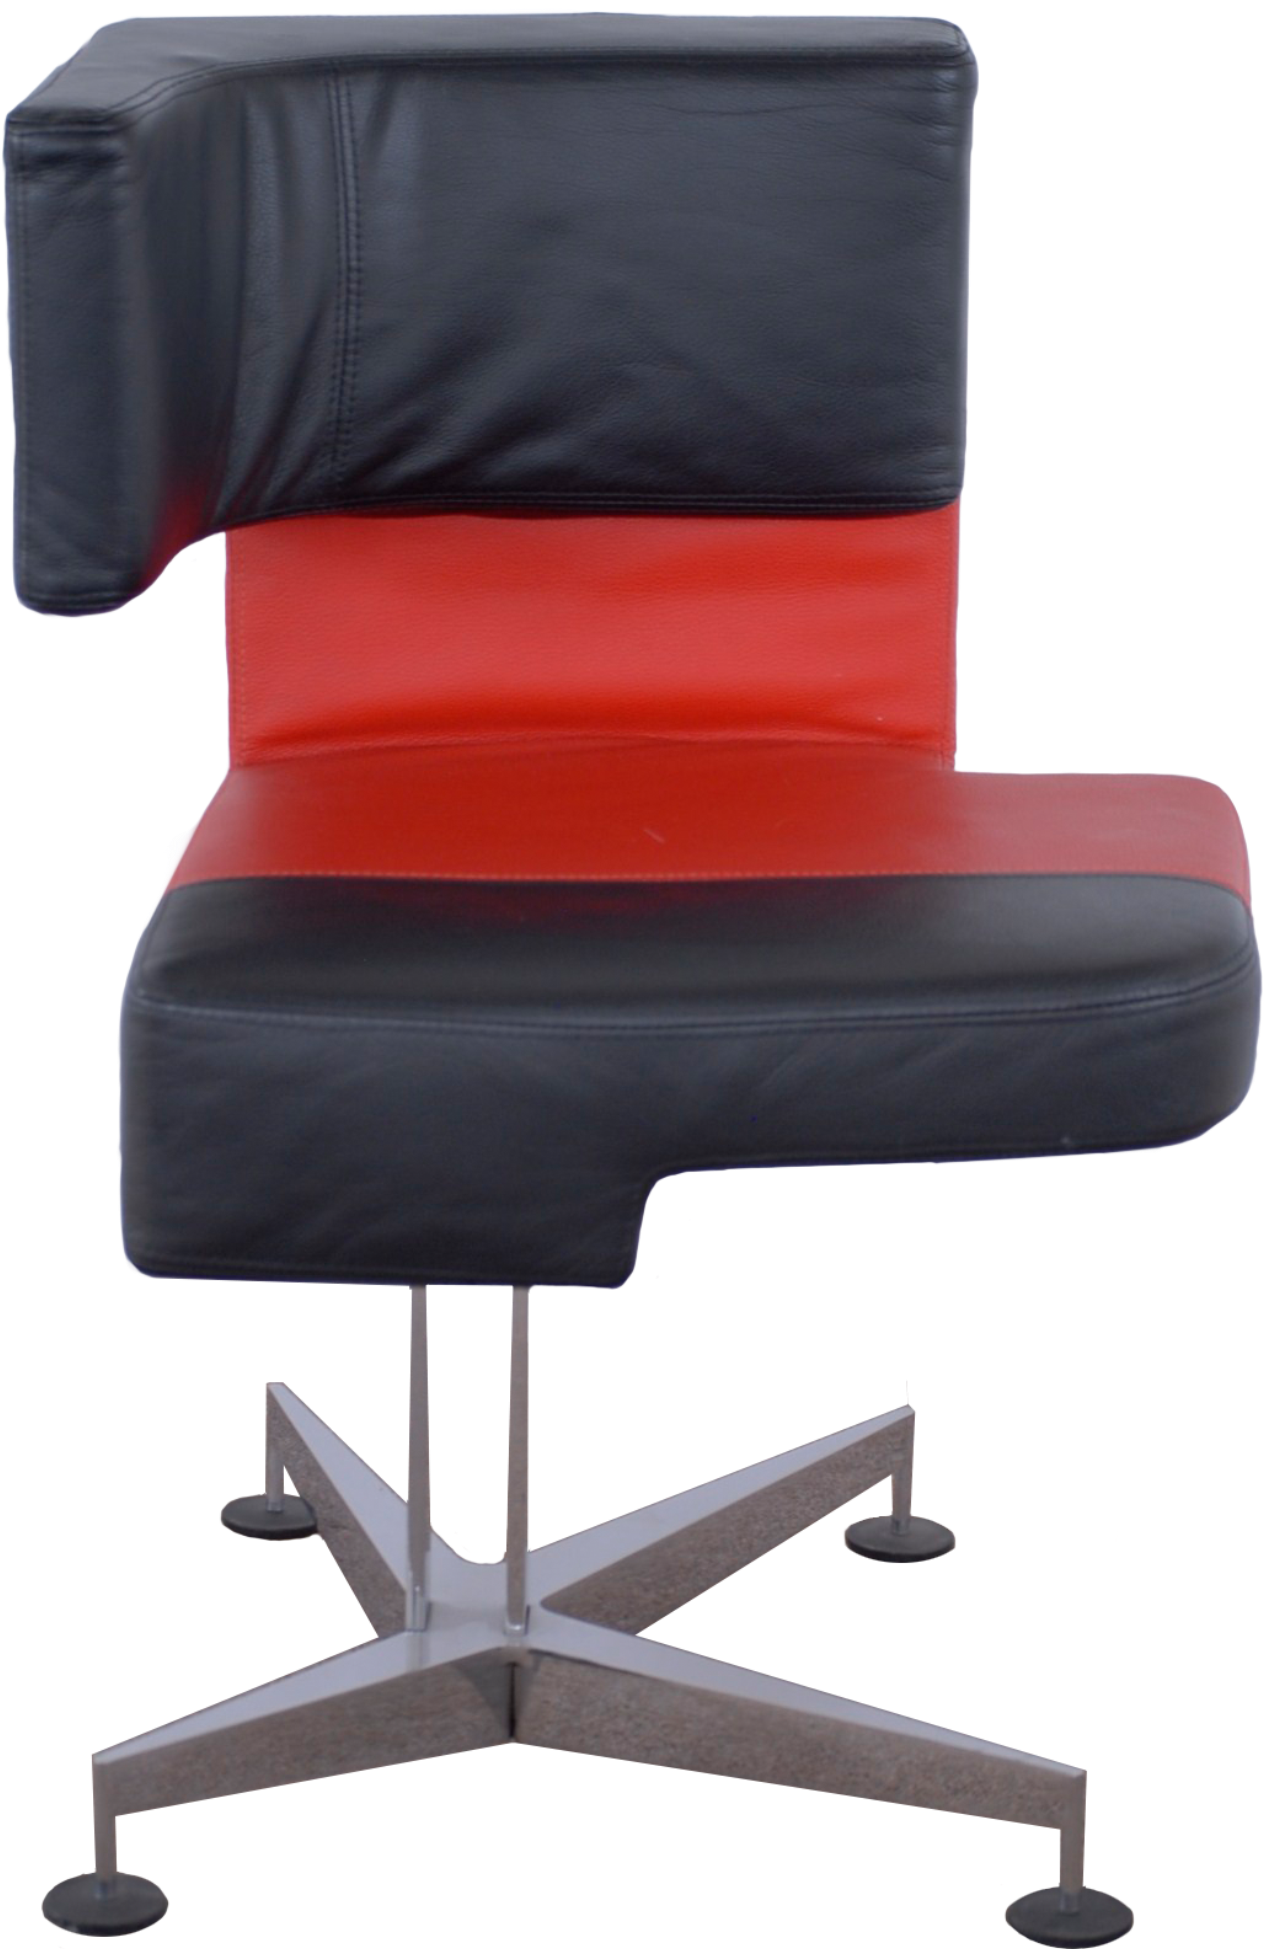 School Desk On Hold - Office Chair (2000x2000), Png Download